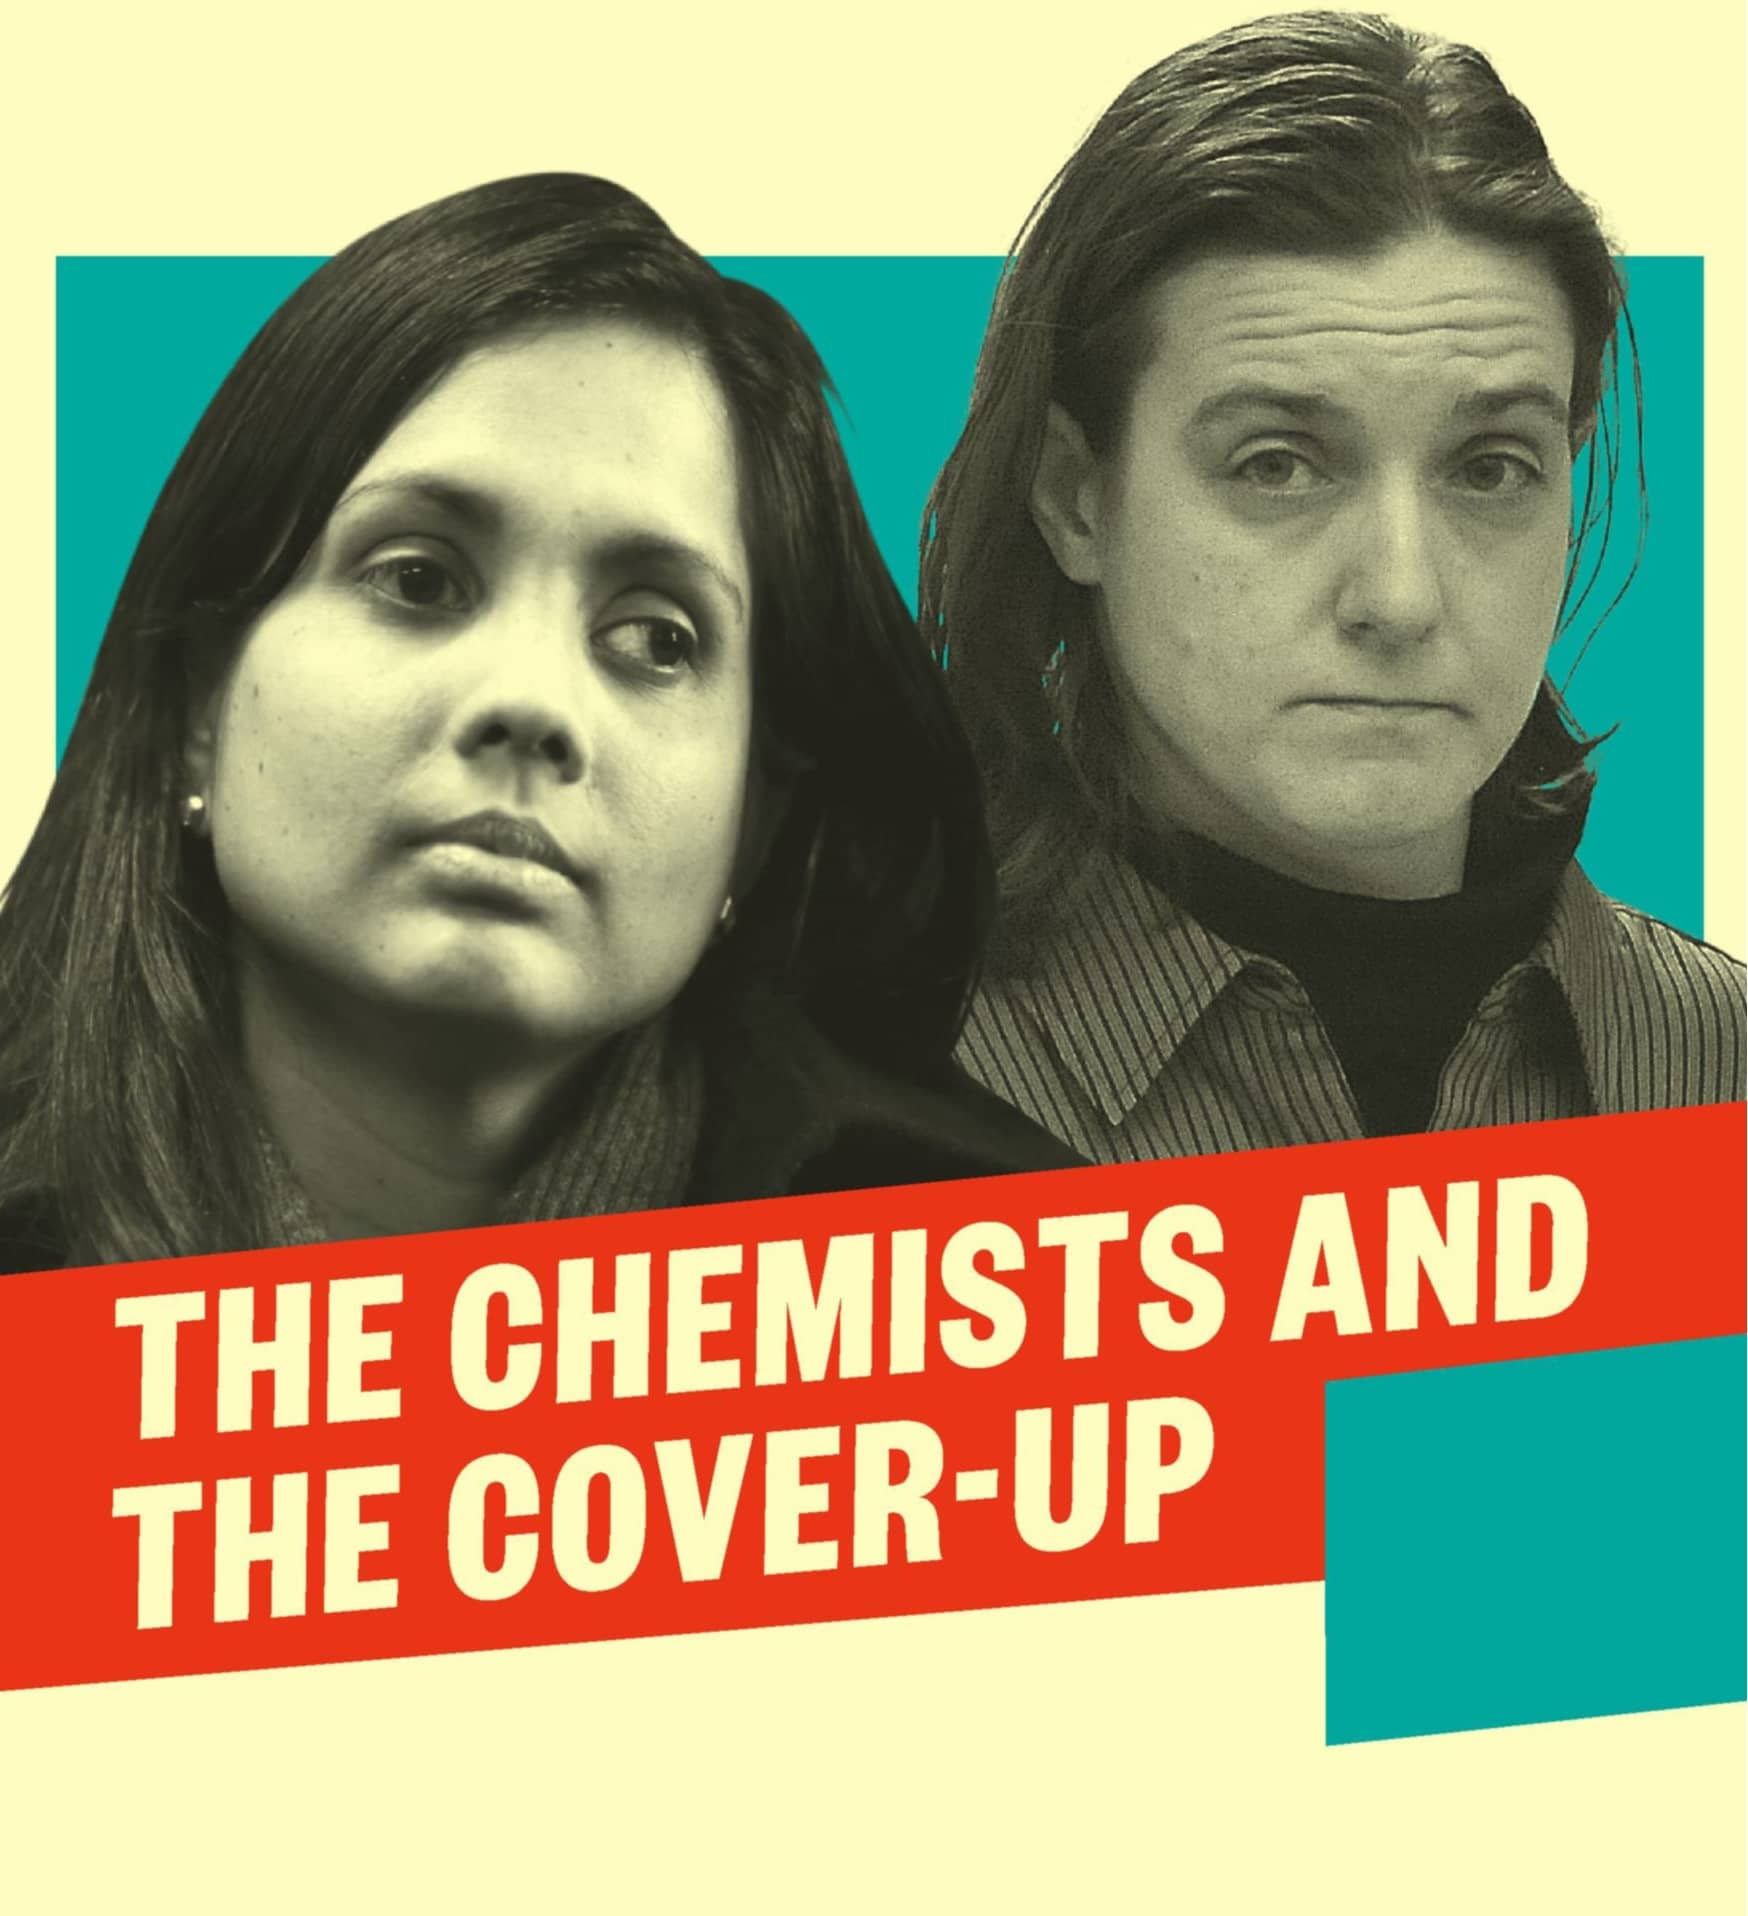 The Chemists And The Cover-Up